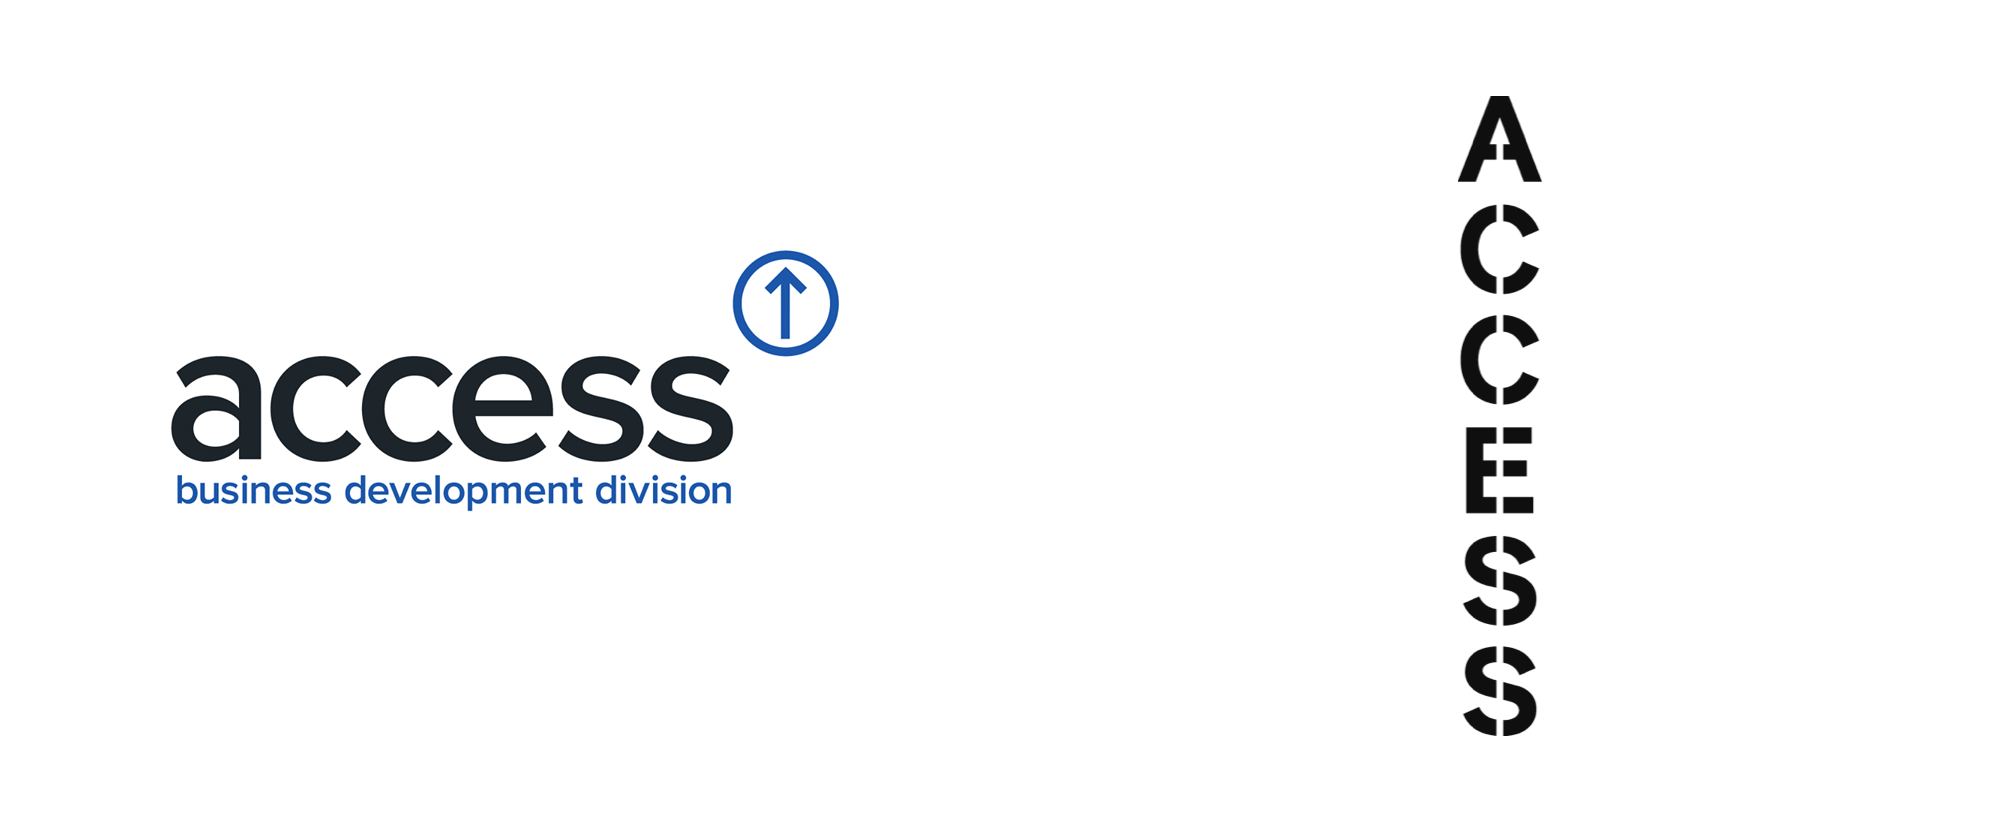 New Logo and Identity for Access by Better